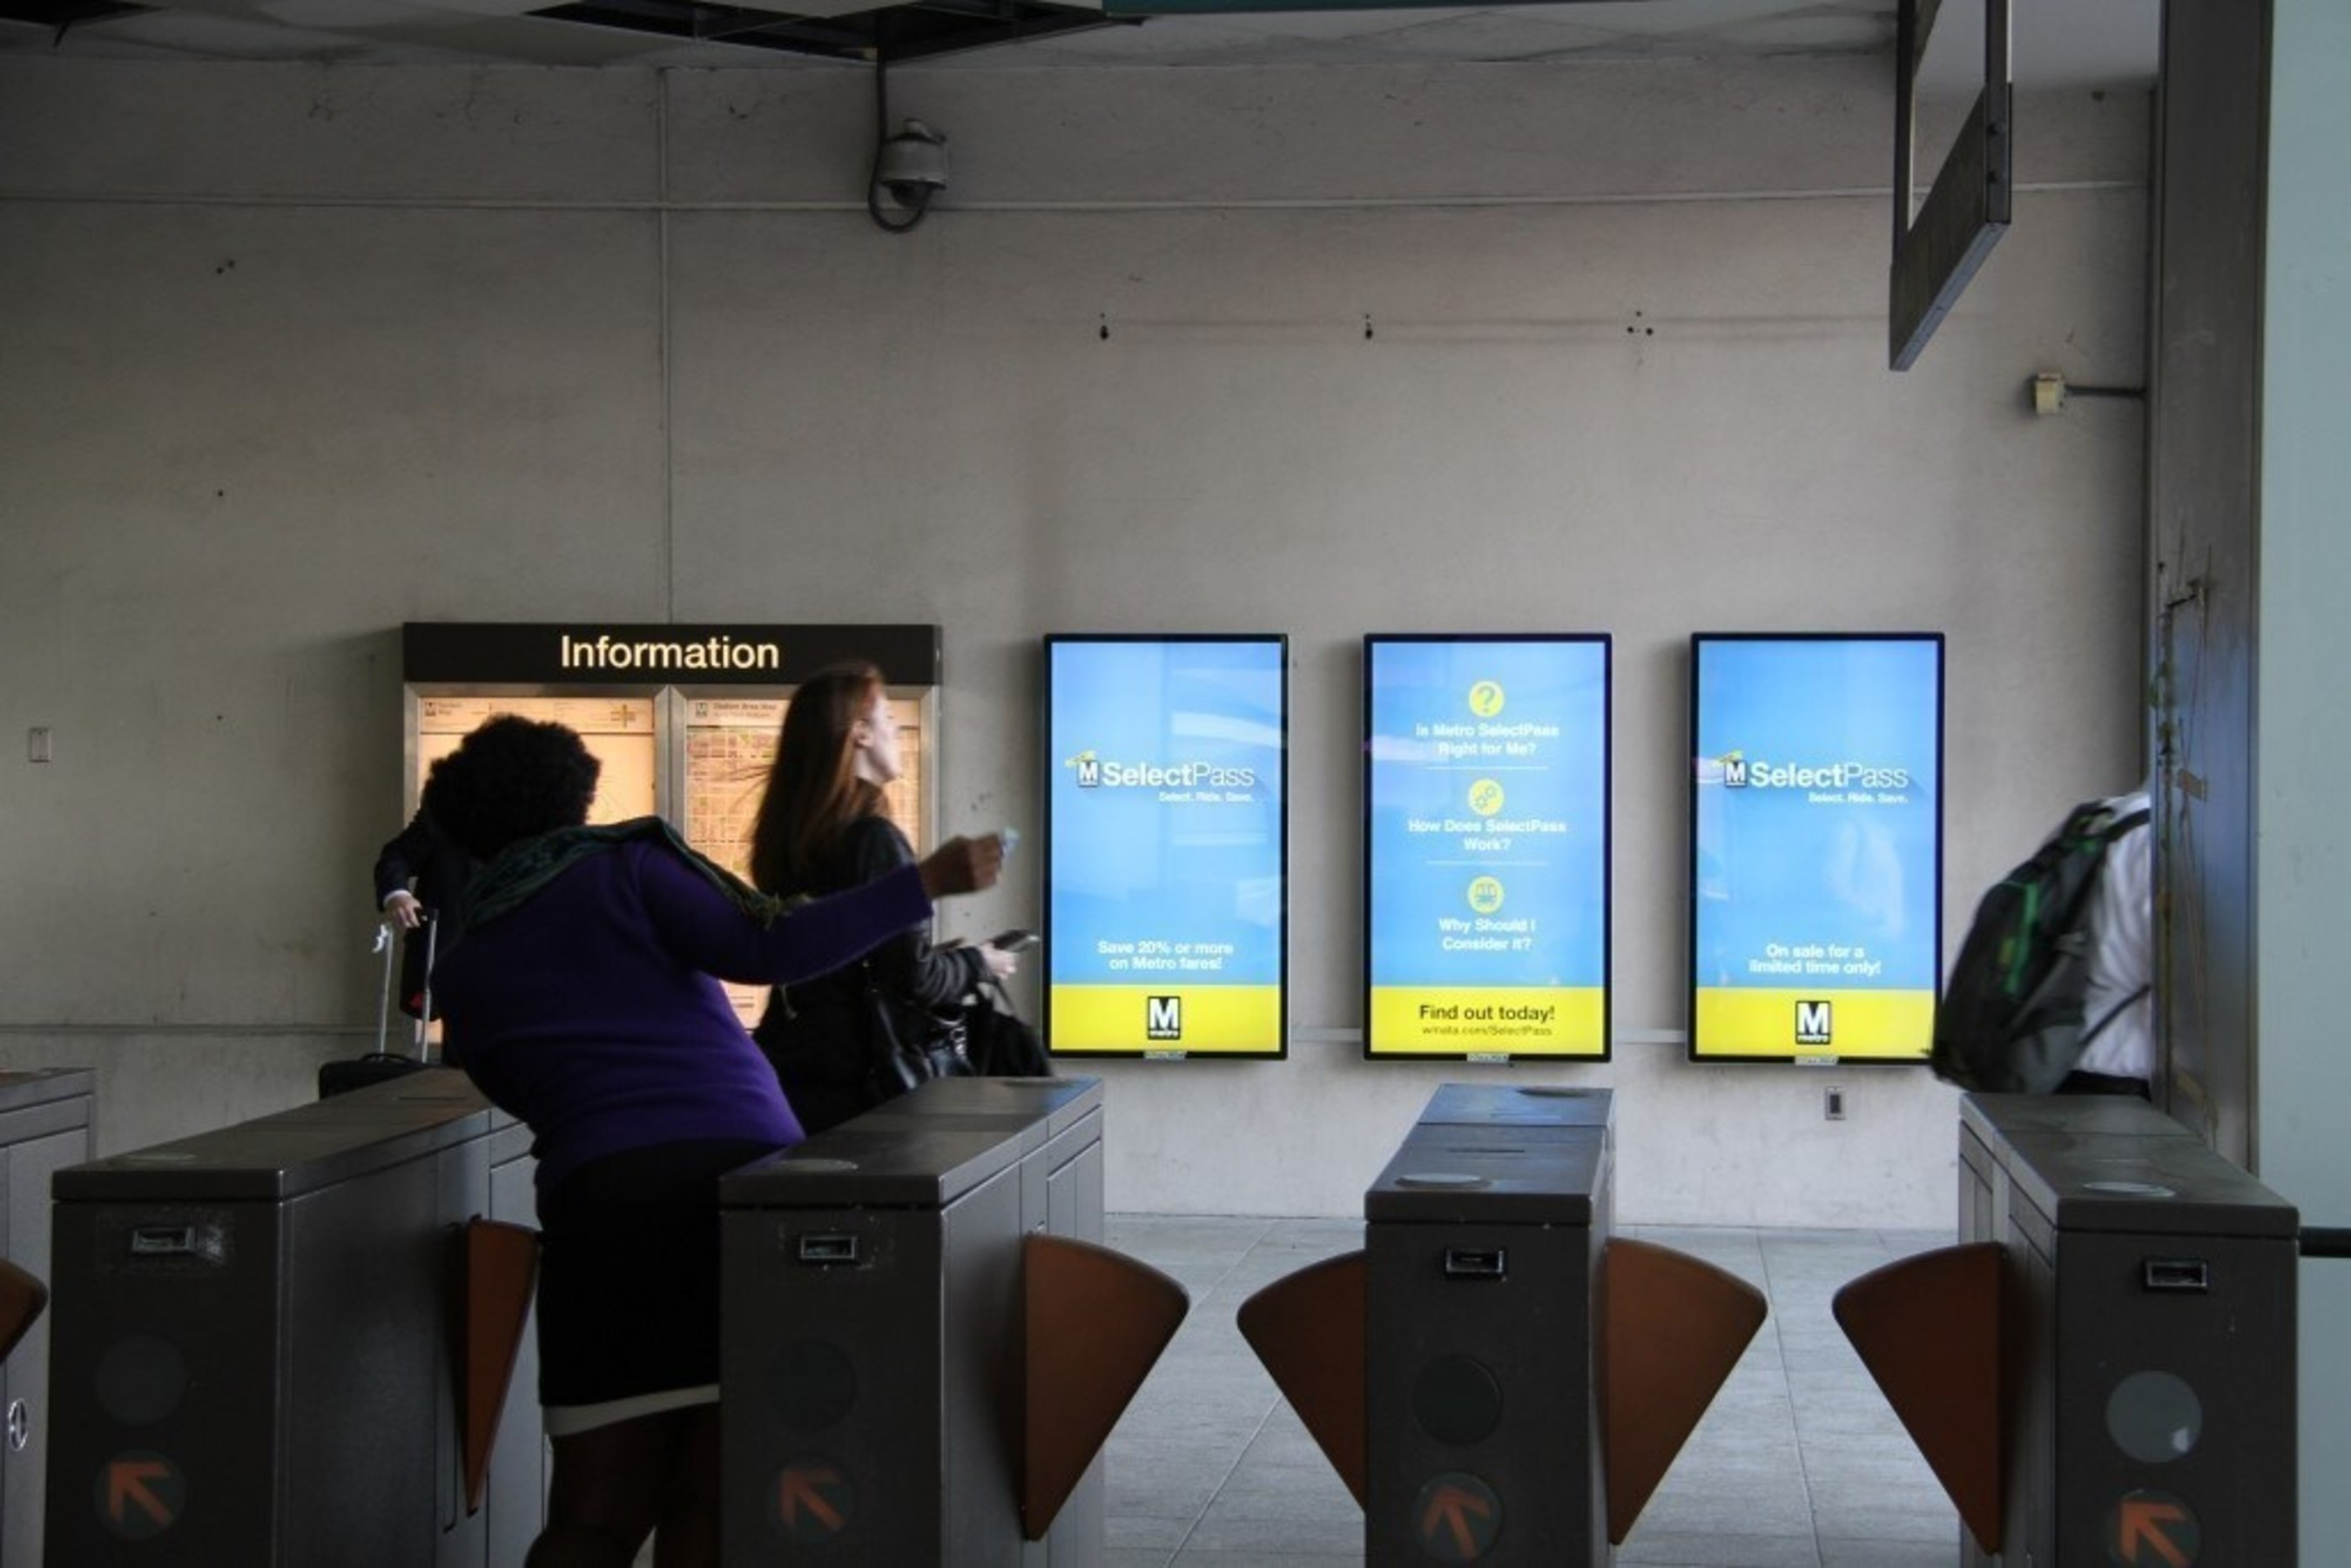 OUTFRONT Media Builds On Washington Metropolitan Area Transit Authority Digital Advertising Partnership With New Navy Yard Installation